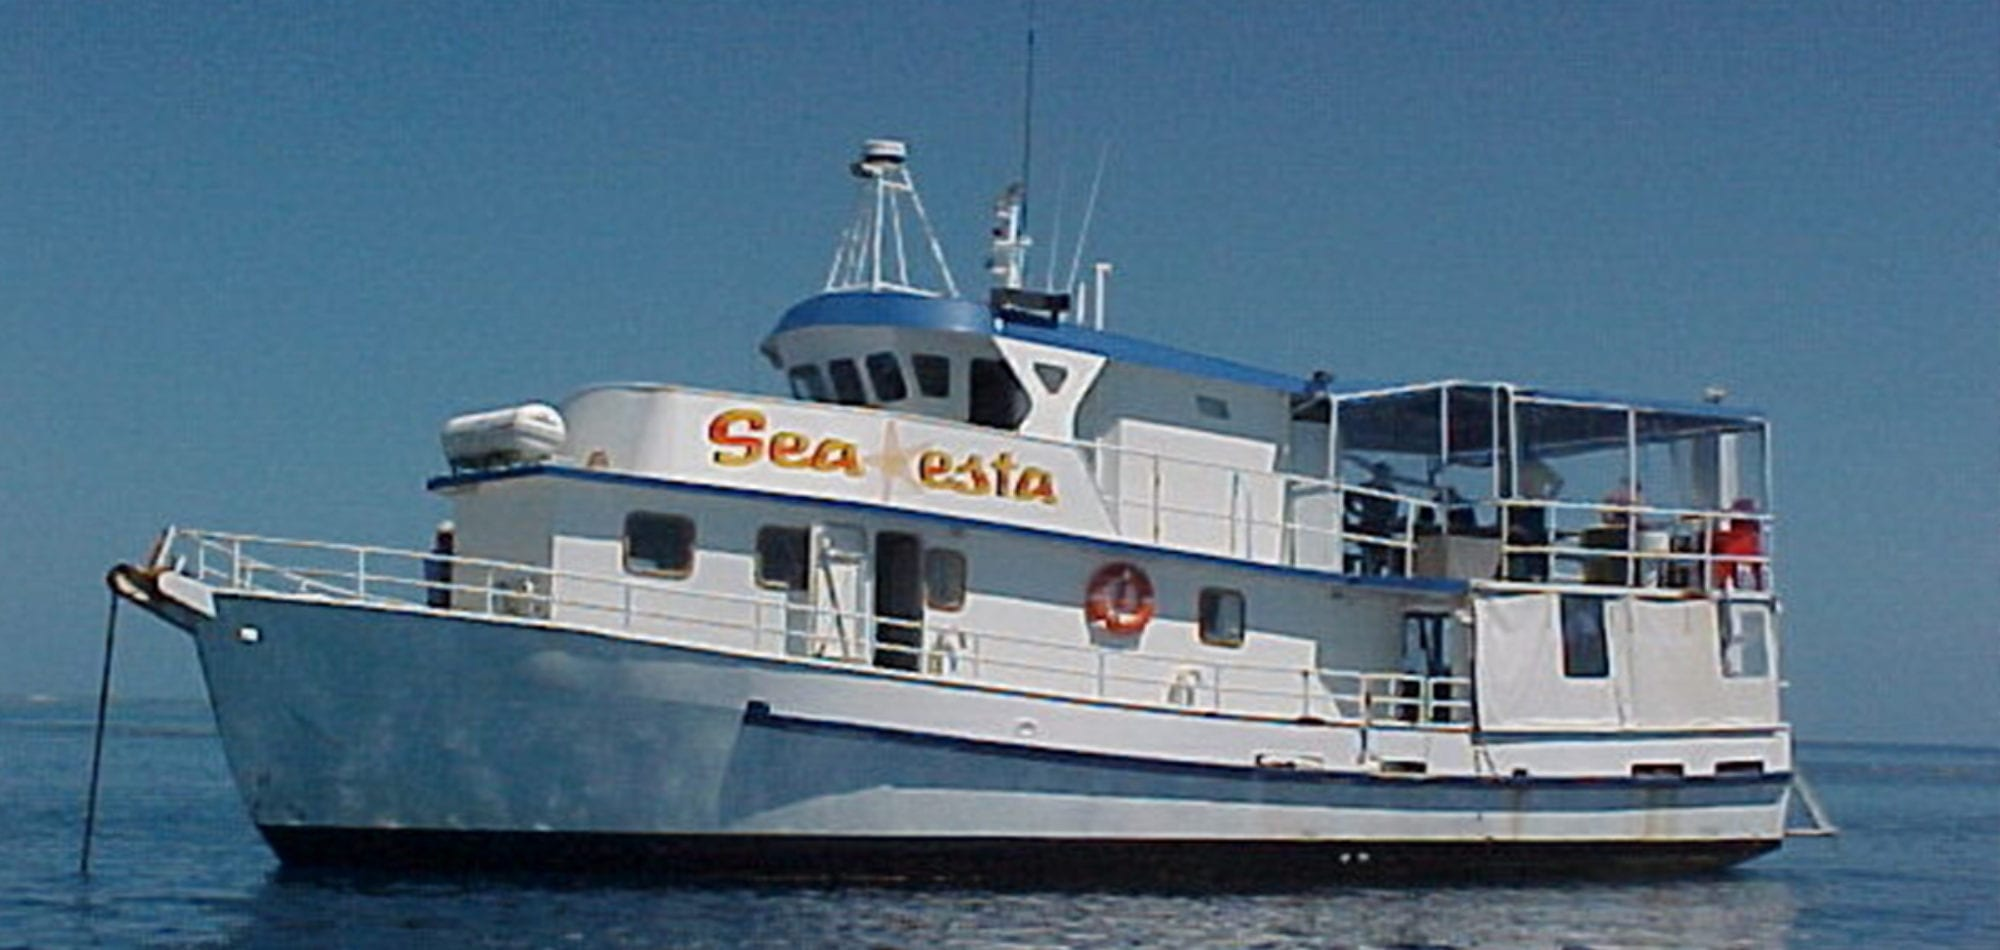 Scuba diving in Australia - Sea Esta livaboard vessel